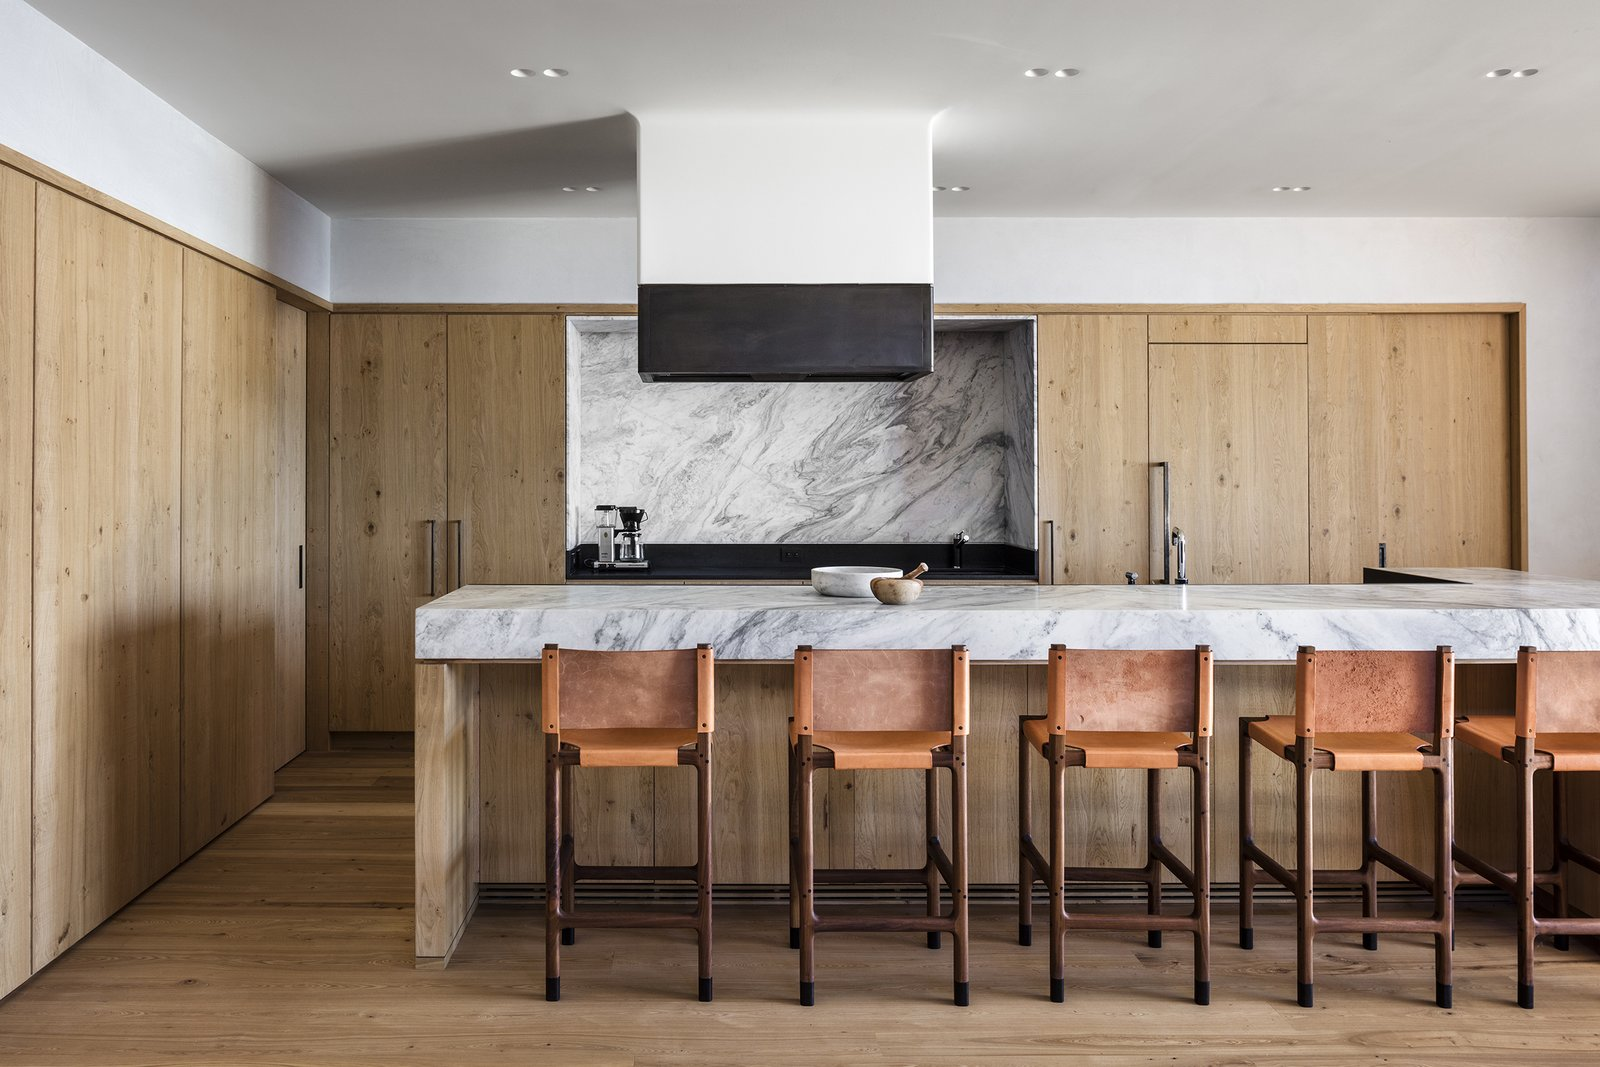 Kitchen, Marble Counter, Range Hood, Light Hardwood Floor, Marble Backsplashe, Wood Cabinet, and Recessed Lighting  Photo 9 of 13 in An Incredible Cedar-Clad House Captures Views of the Sea and Forest